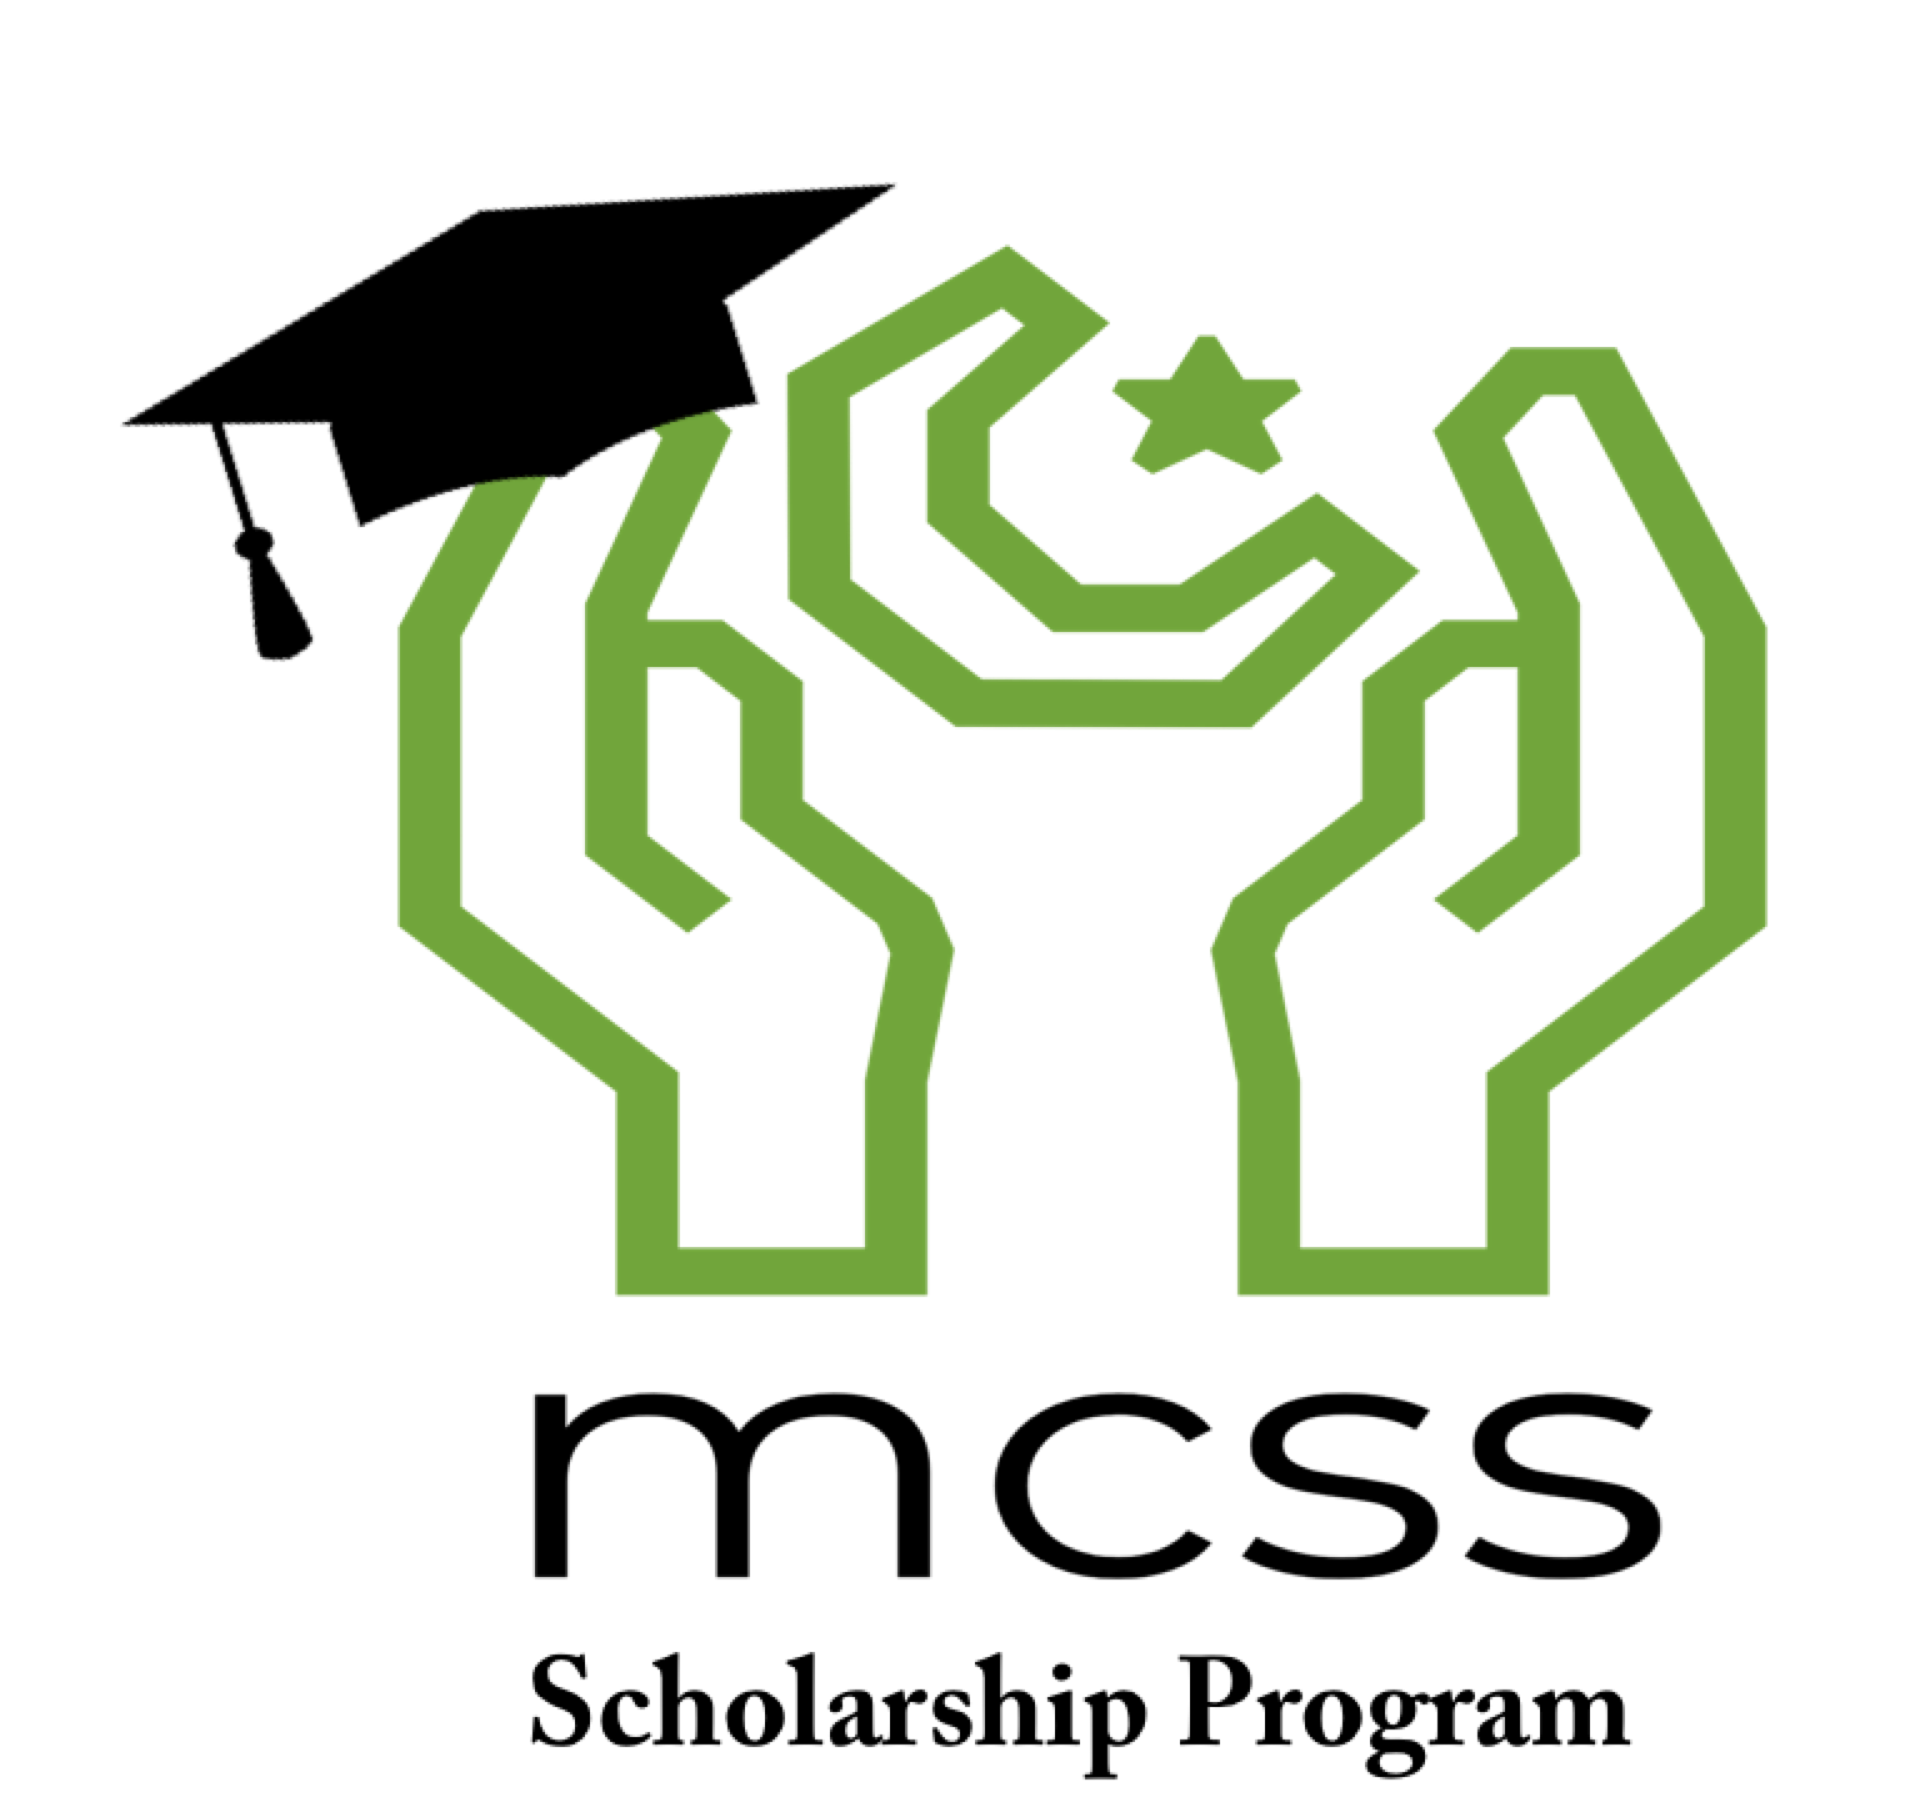 MCSS Scholarship Program - MCSS is excited to launch a new Scholarship program! New and existing clients are welcome to apply! Grants will be awarded in the amounts of $500-$2500 for heads of households looking to gain vocational training, adult education courses, certification programs and college/university degrees. Scholarship applications are also open to graduating high school students and current college/university students. Our deadline for the scholarship application has passed. Thank you to all those who applied. Winners will be announced on our Banquet Dinner.